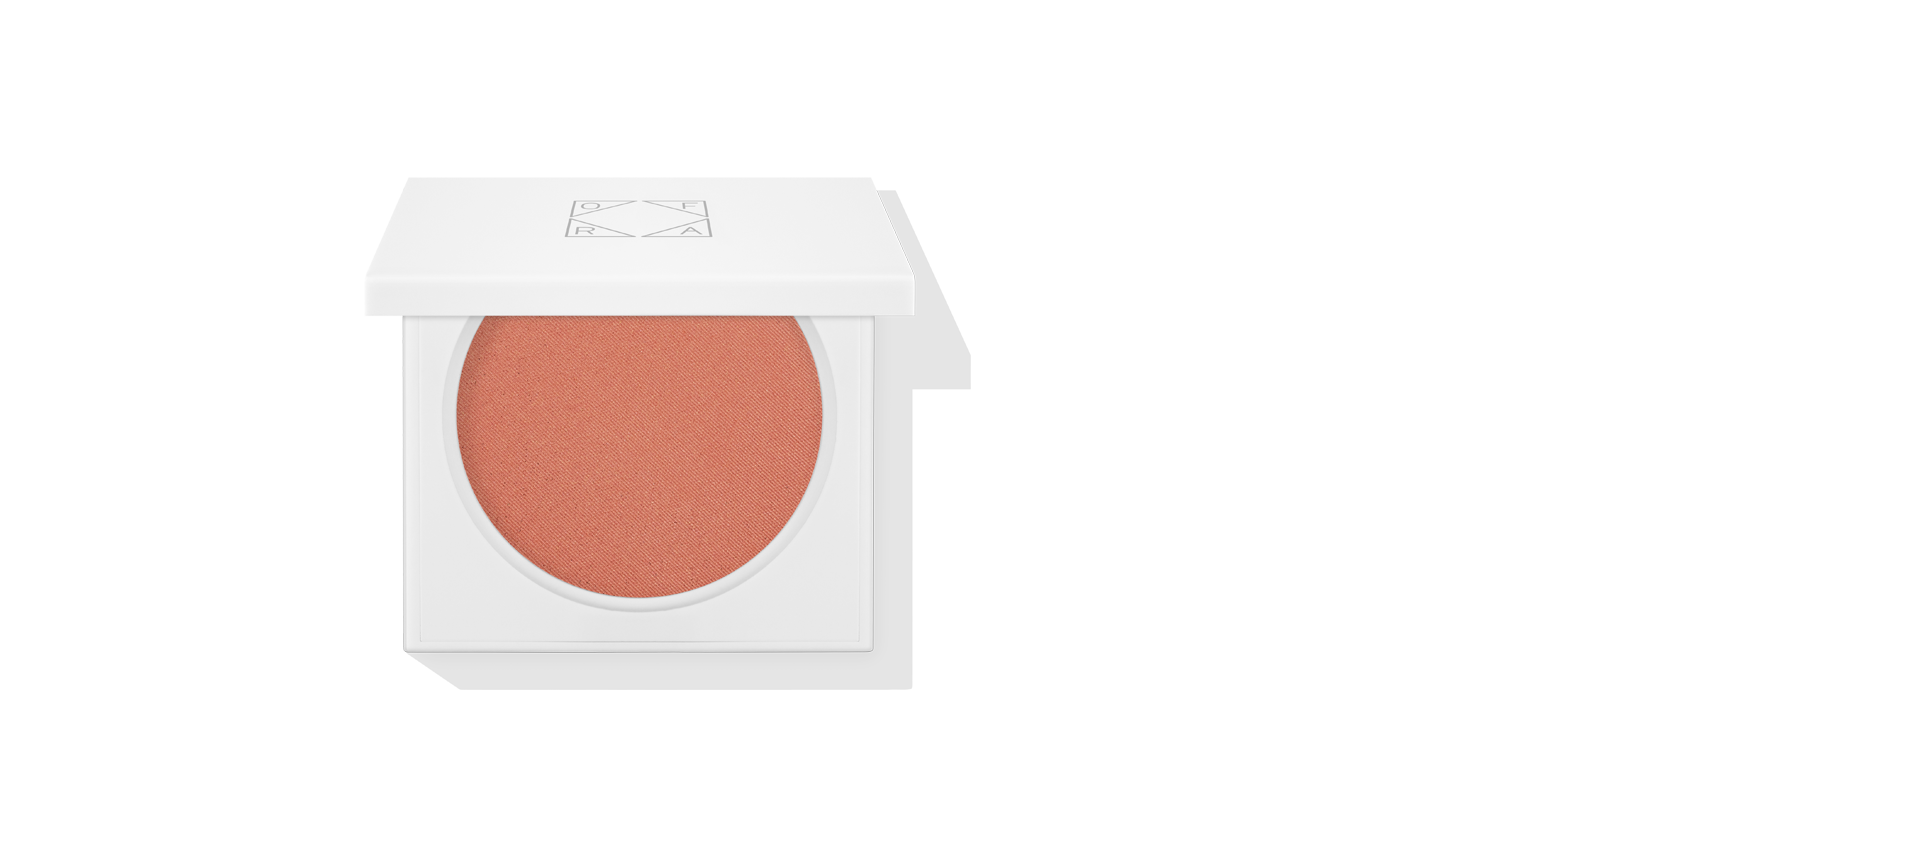 Ofra Cosmetics - MADISON MILLER Ollie Need is Love Blush